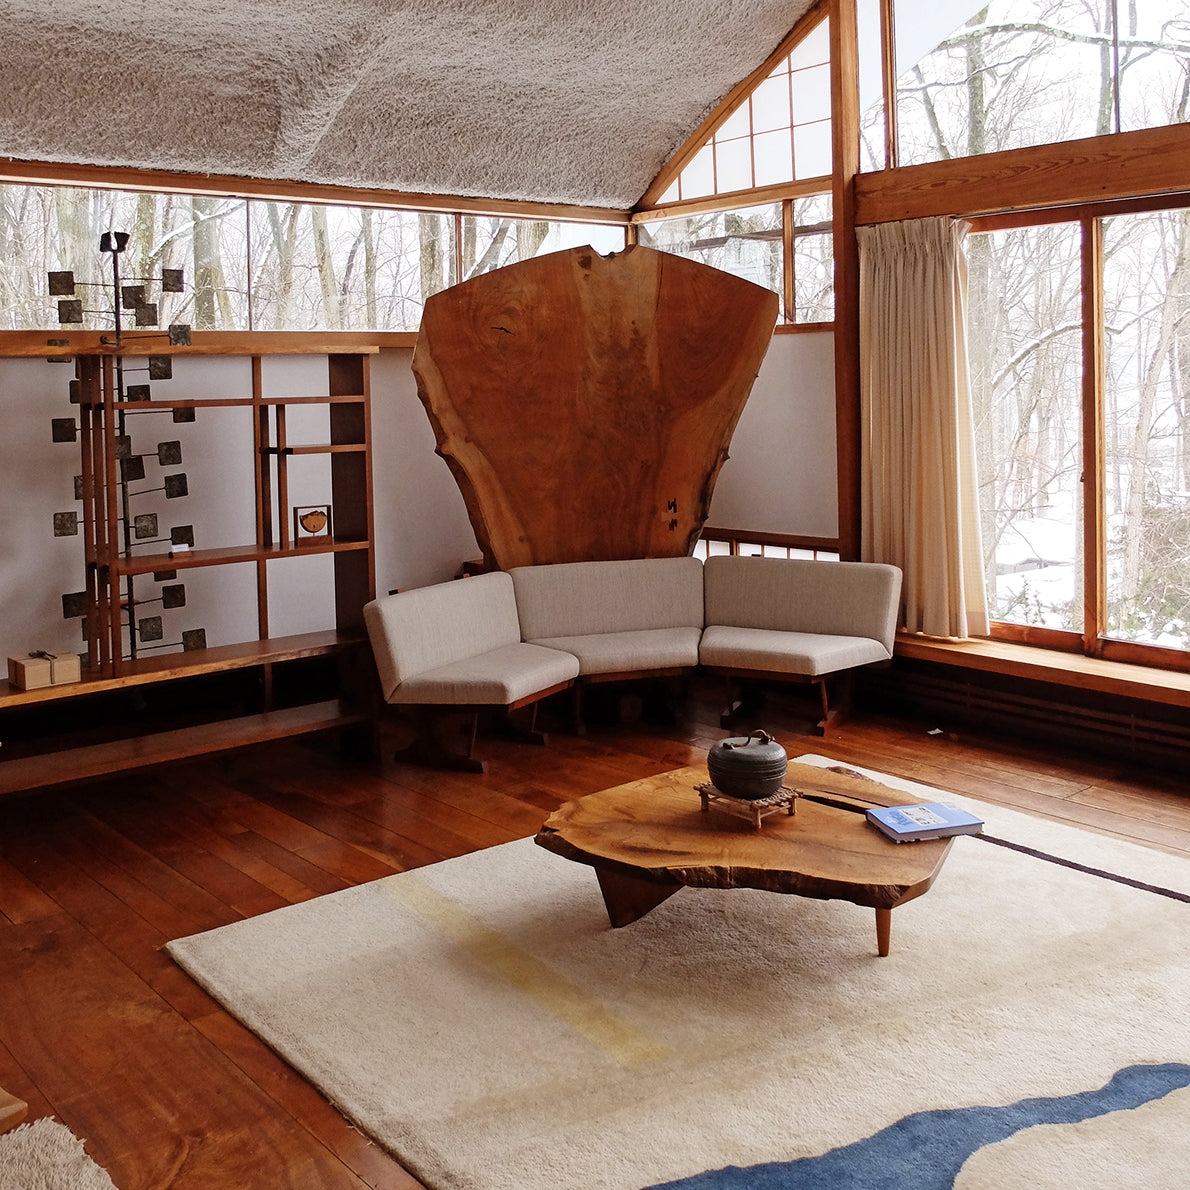 George Nakashima's Home Is a Timeless Relic To Modernism, photo by Adam Štěch